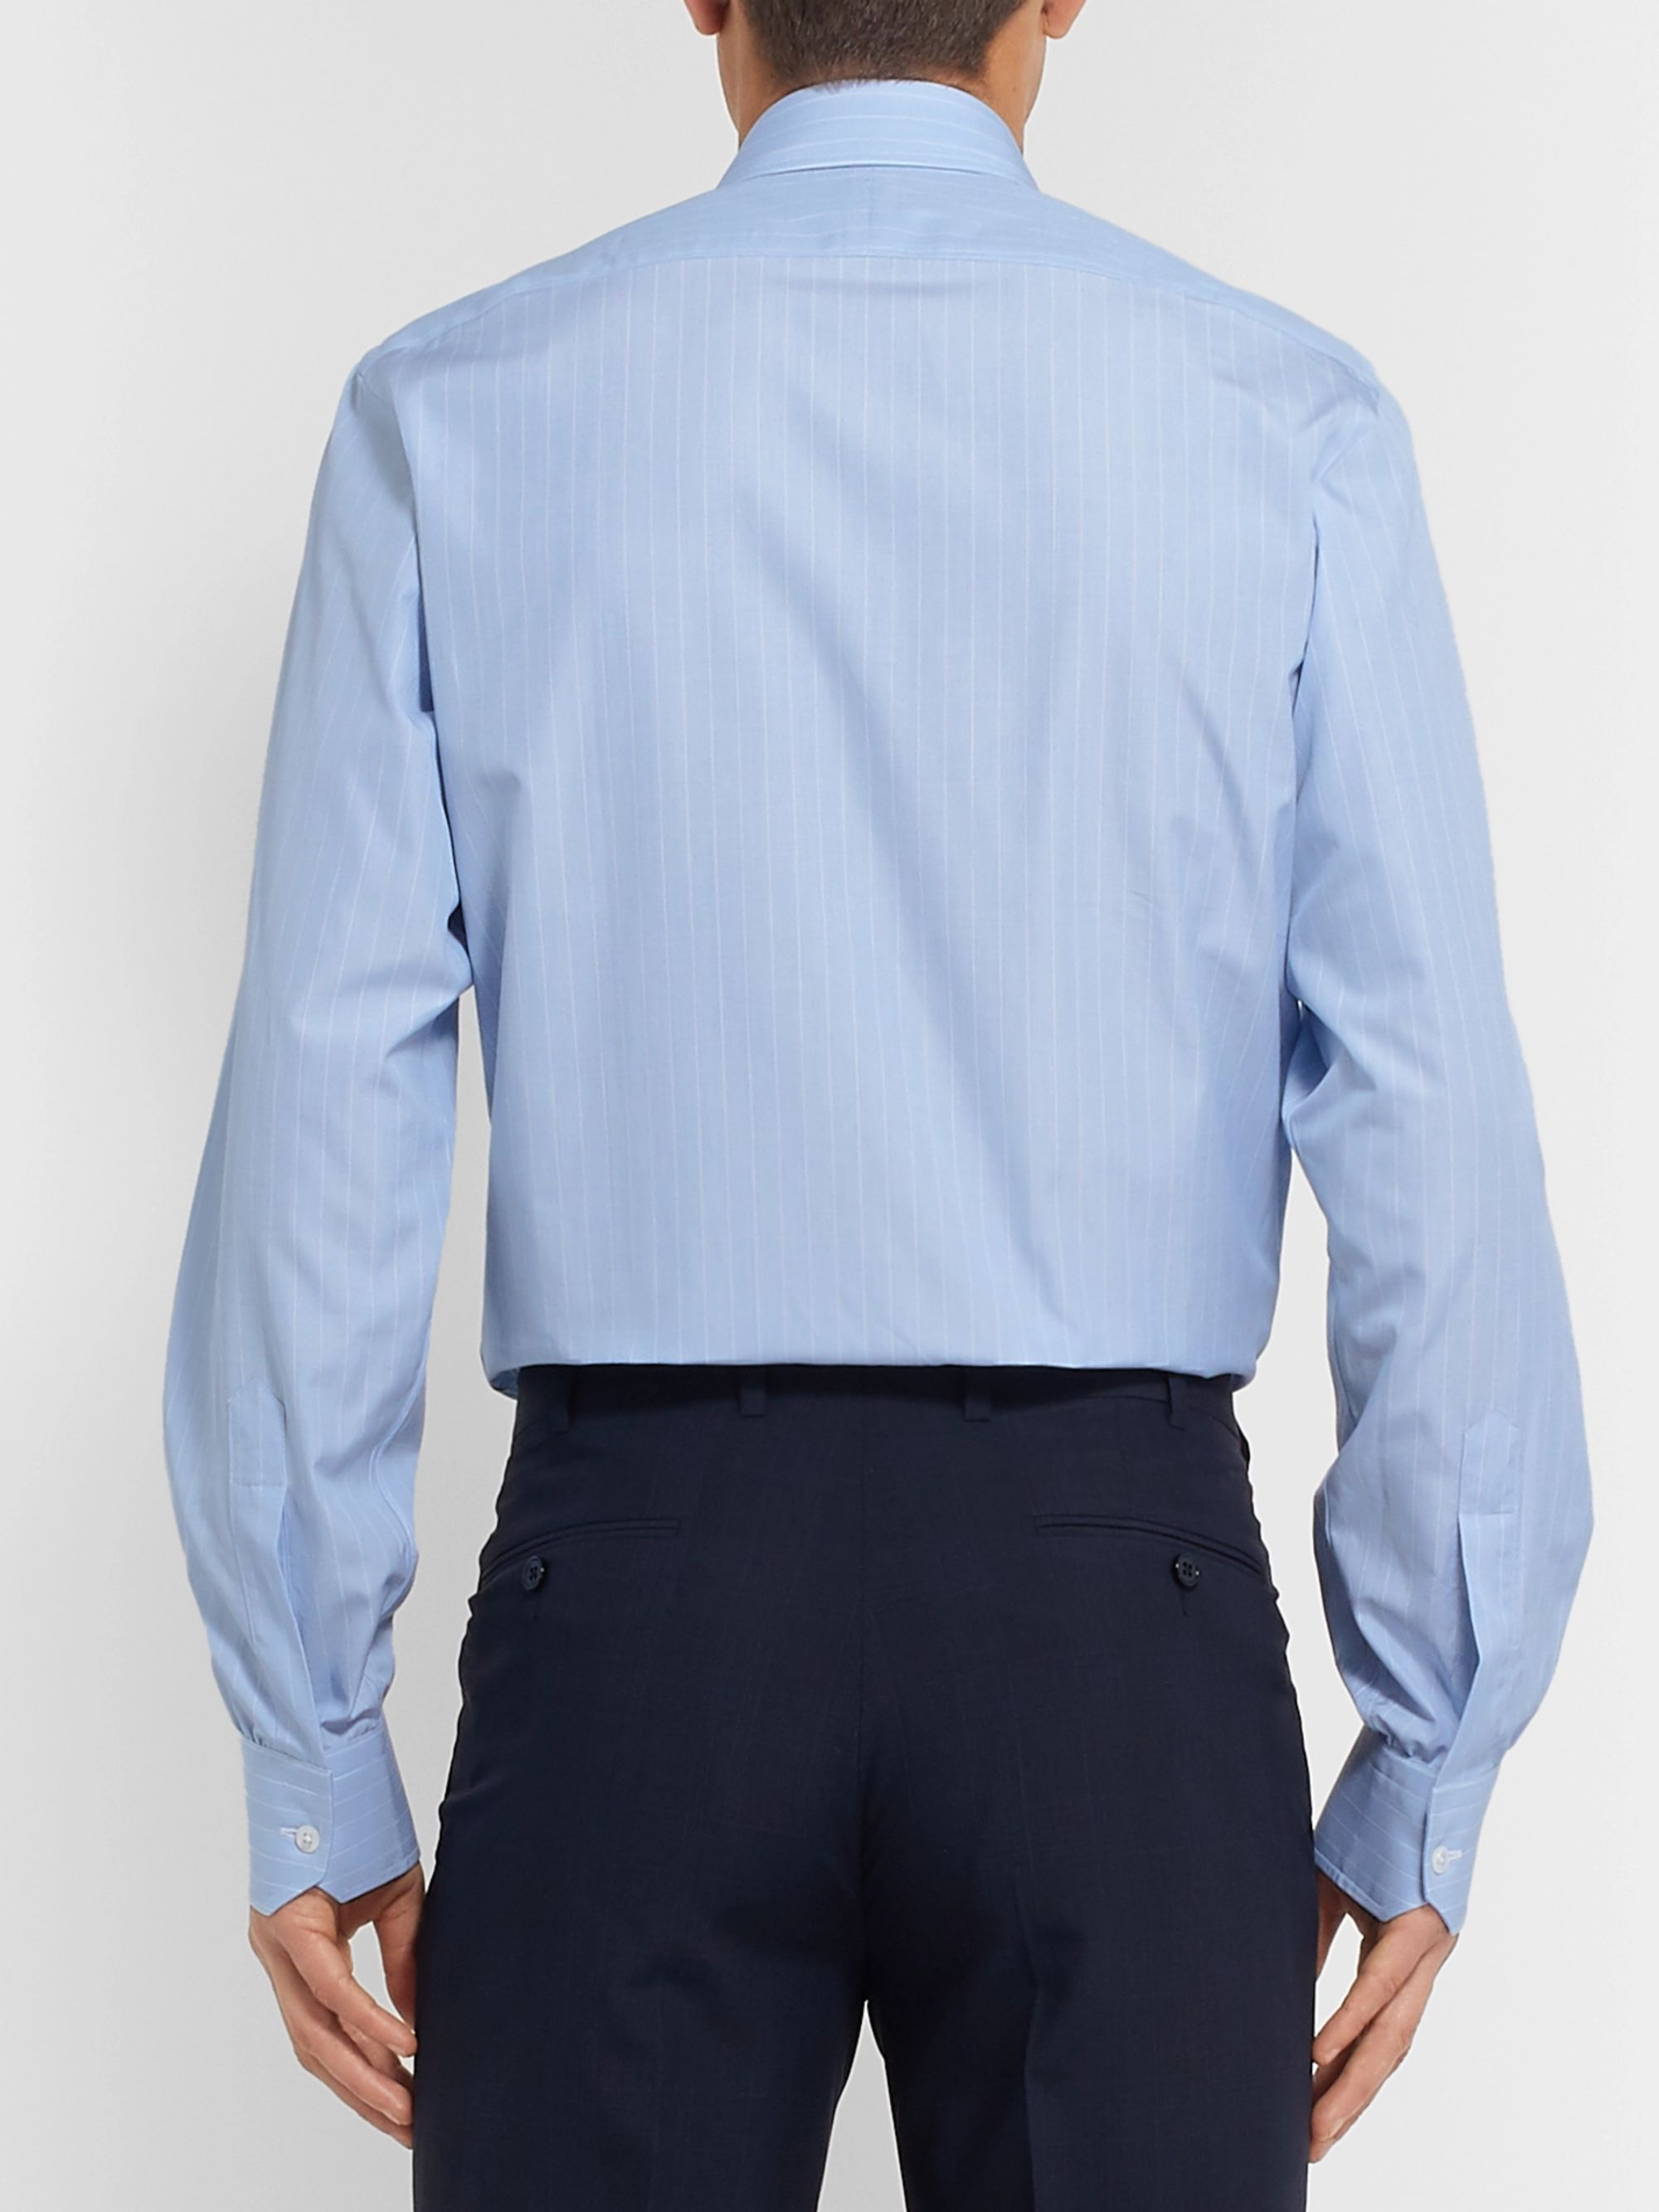 Turnbull & Asser Light-Blue Slim-Fit Striped Cotton-Poplin Shirt